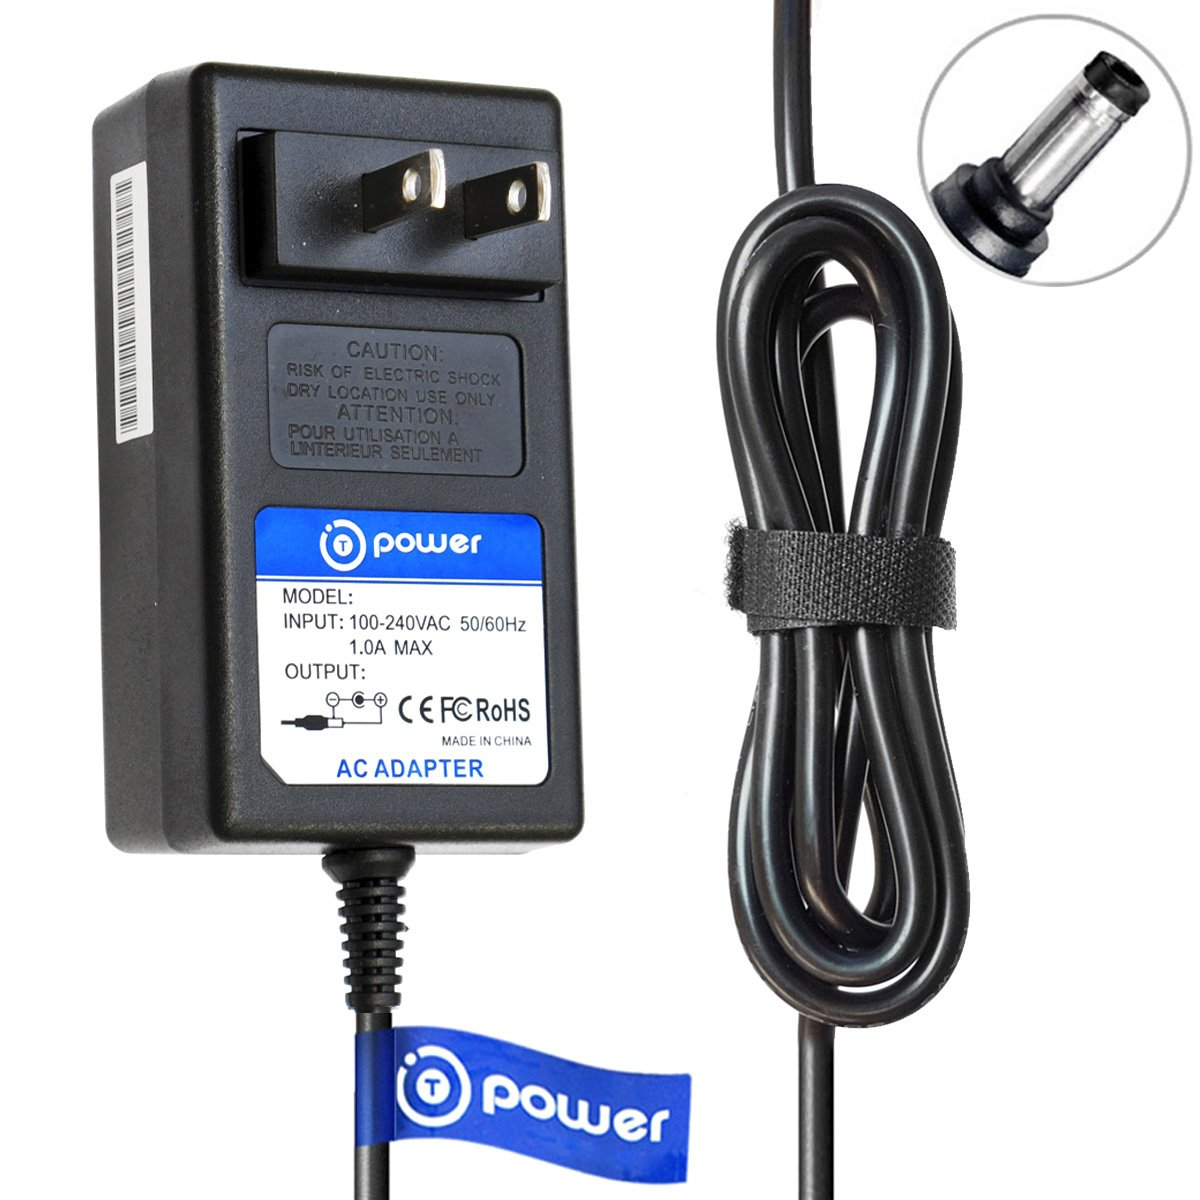 T-Power Ac Dc Adapter Charger for Williams Allegro 88-key Piano & Yamaha Digital Piano Midi Keyboard Series: YPG, YDP, YPP, YPR, YPT, CP, DGX, DJX, DSR, DX, EZ, NP, P, PC, PCS, PSS PCR SC - short circuit TP-oe5-HDG